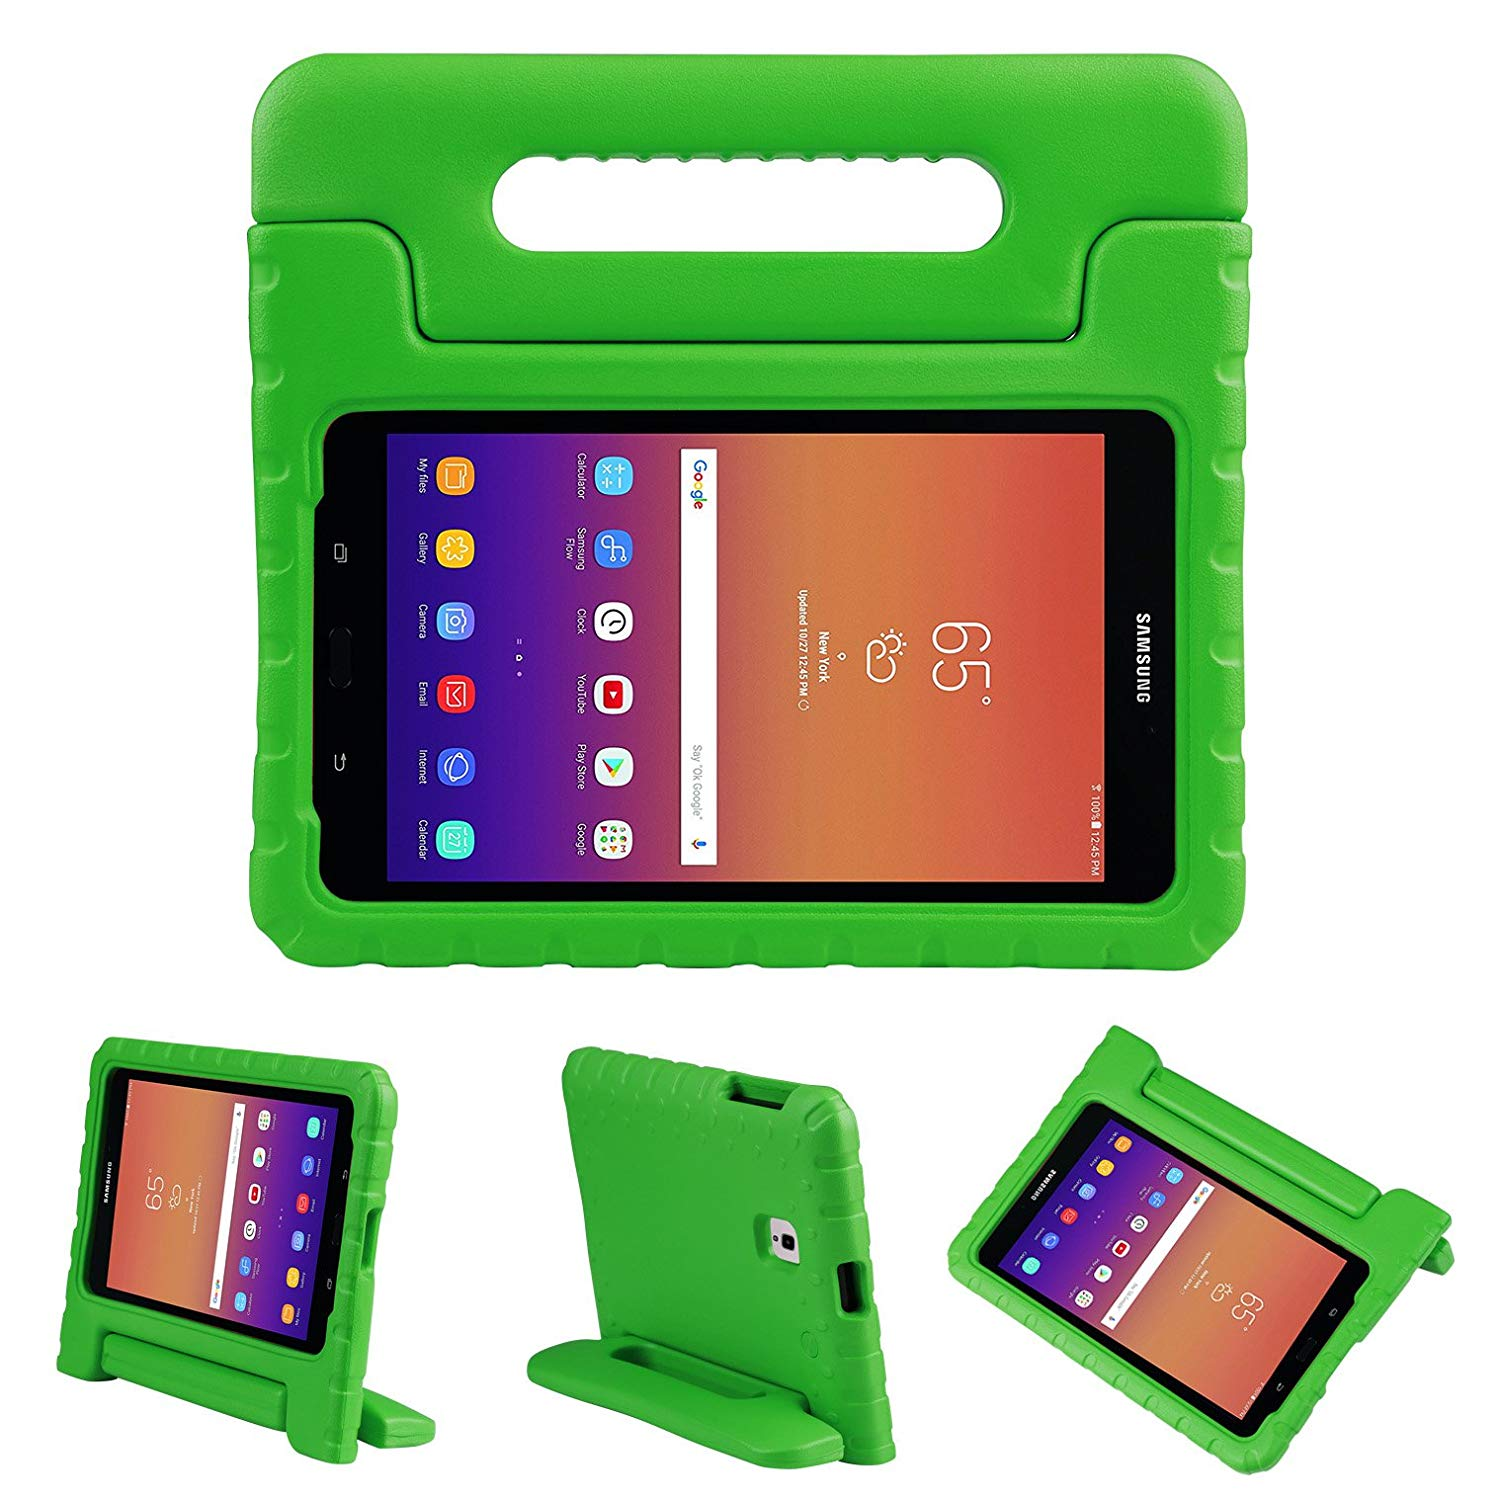 Samsung Galaxy Tab A 8.0 2017 T380 Case Shockproof Case Handle Stand Protection Cover For Kids Light Weight